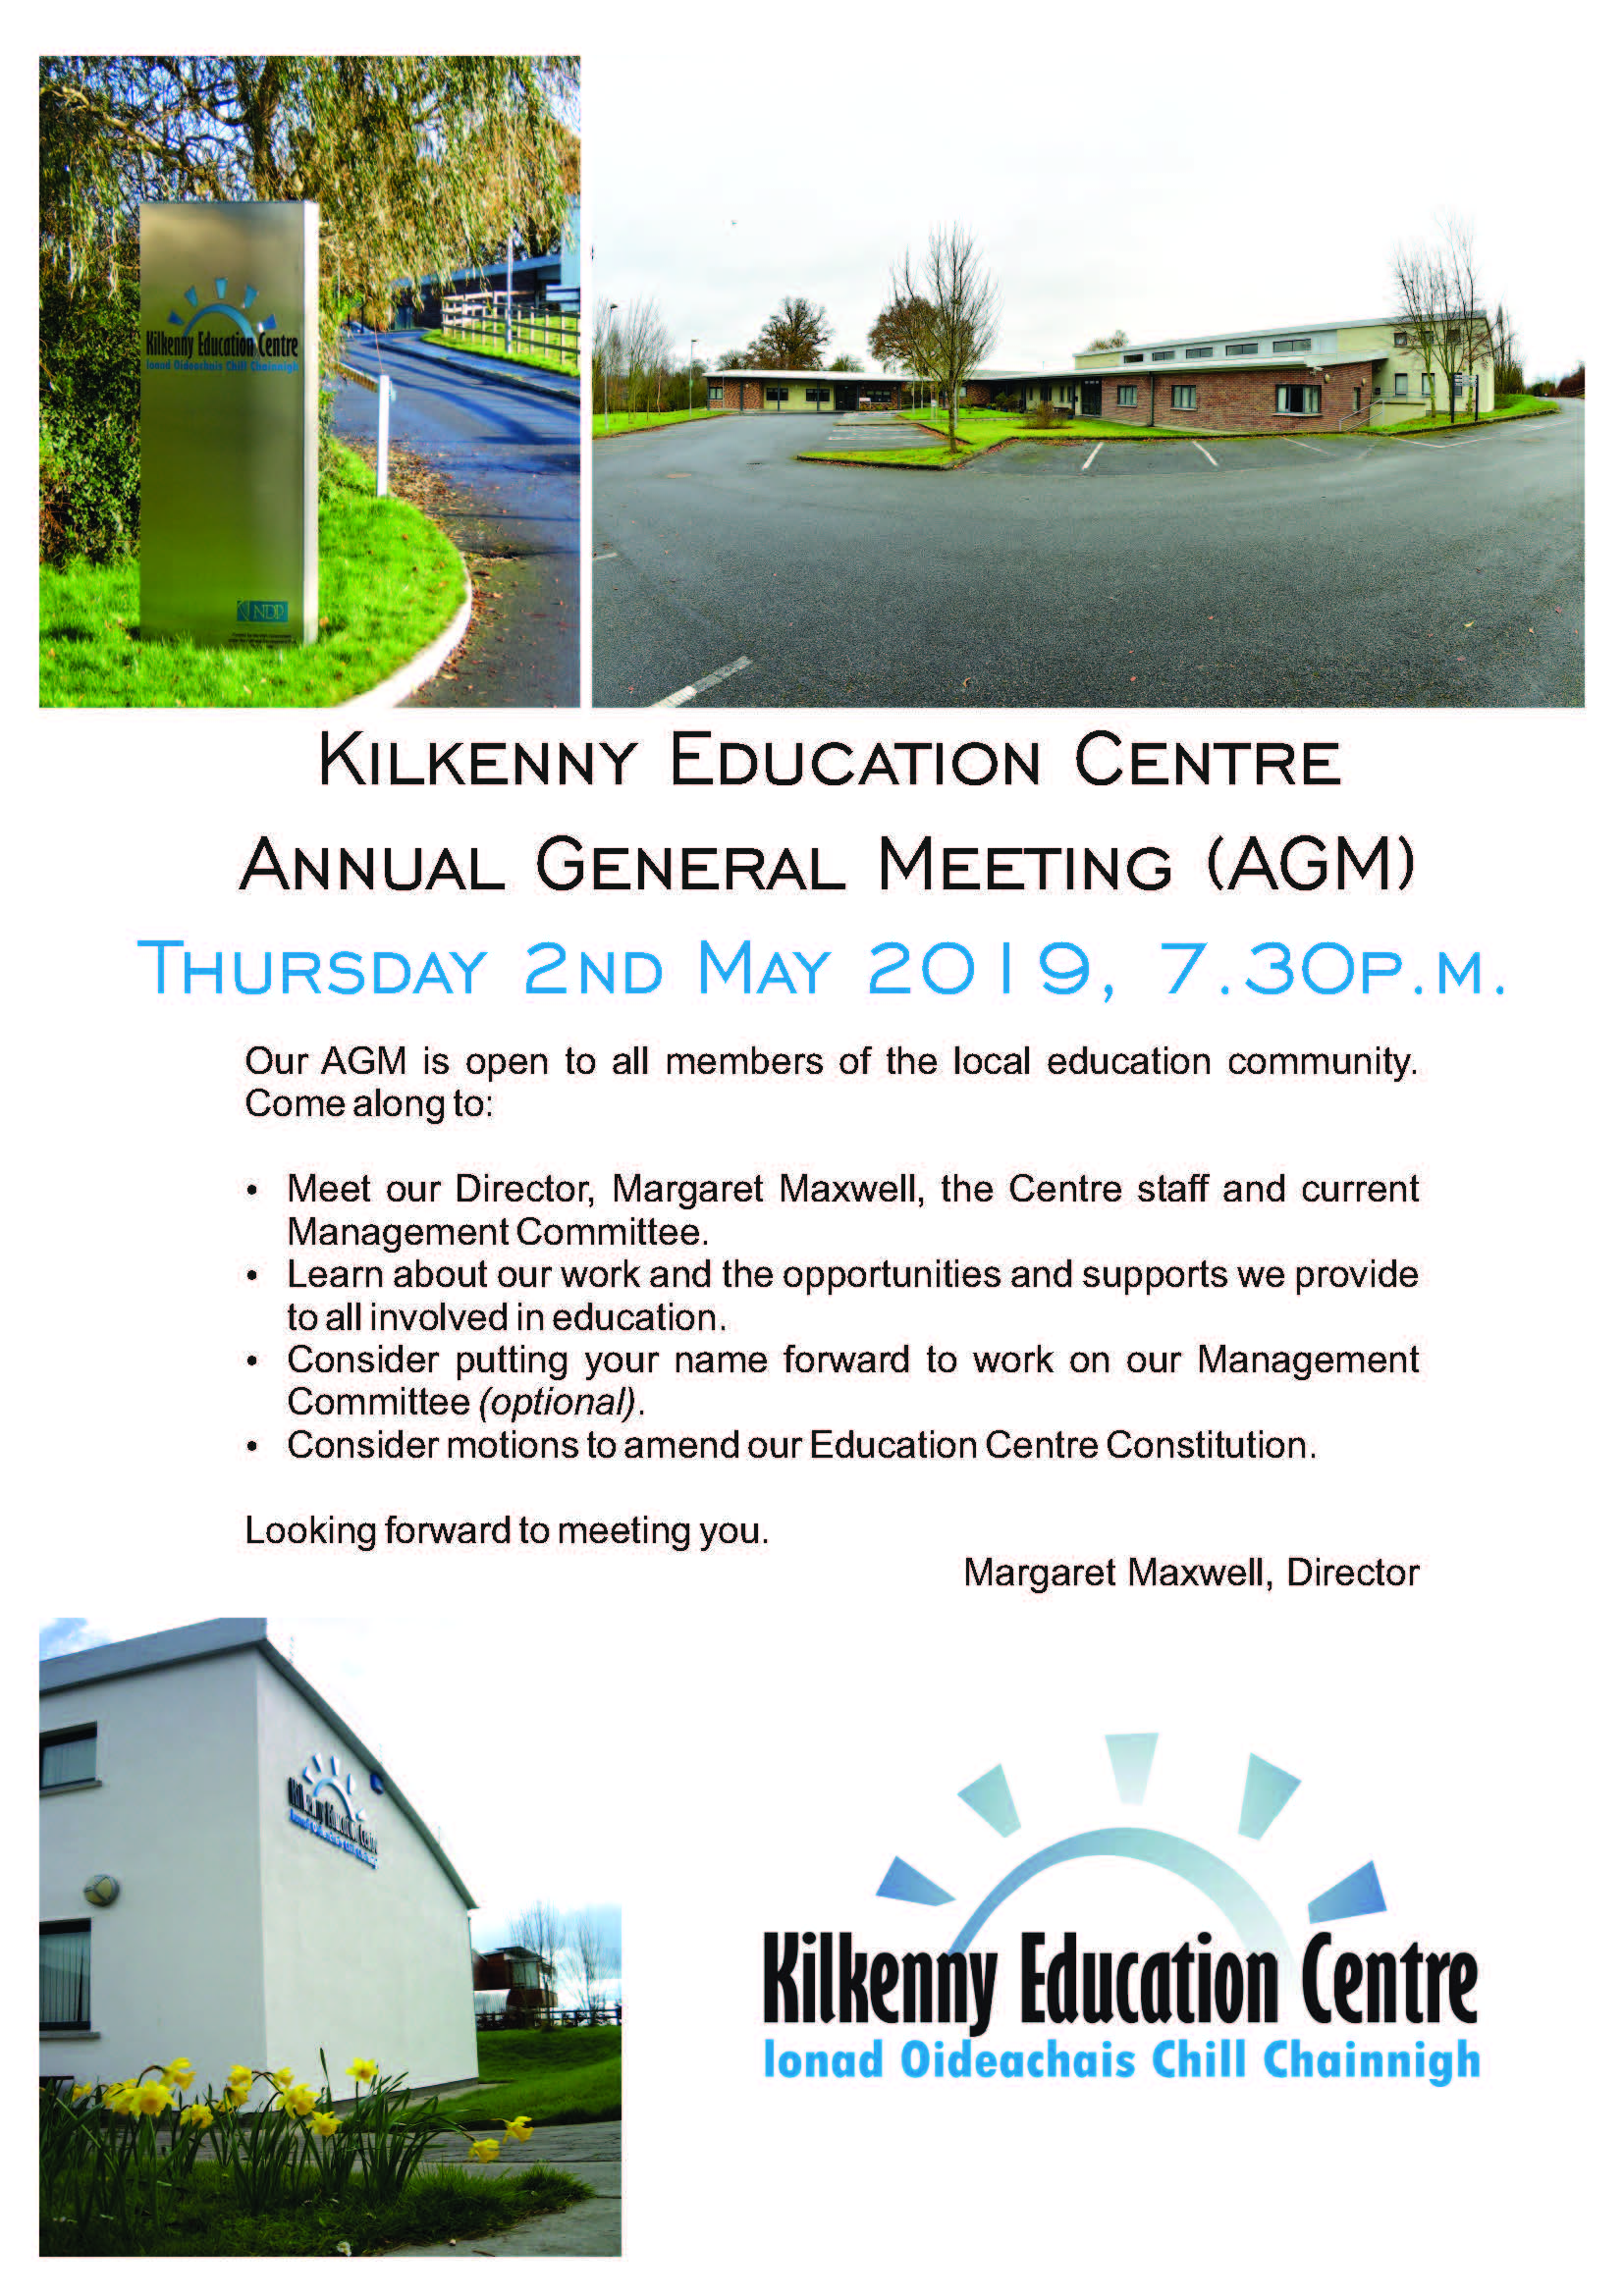 Kilkenny Education Centre AGM Flyer Corel Draw Format